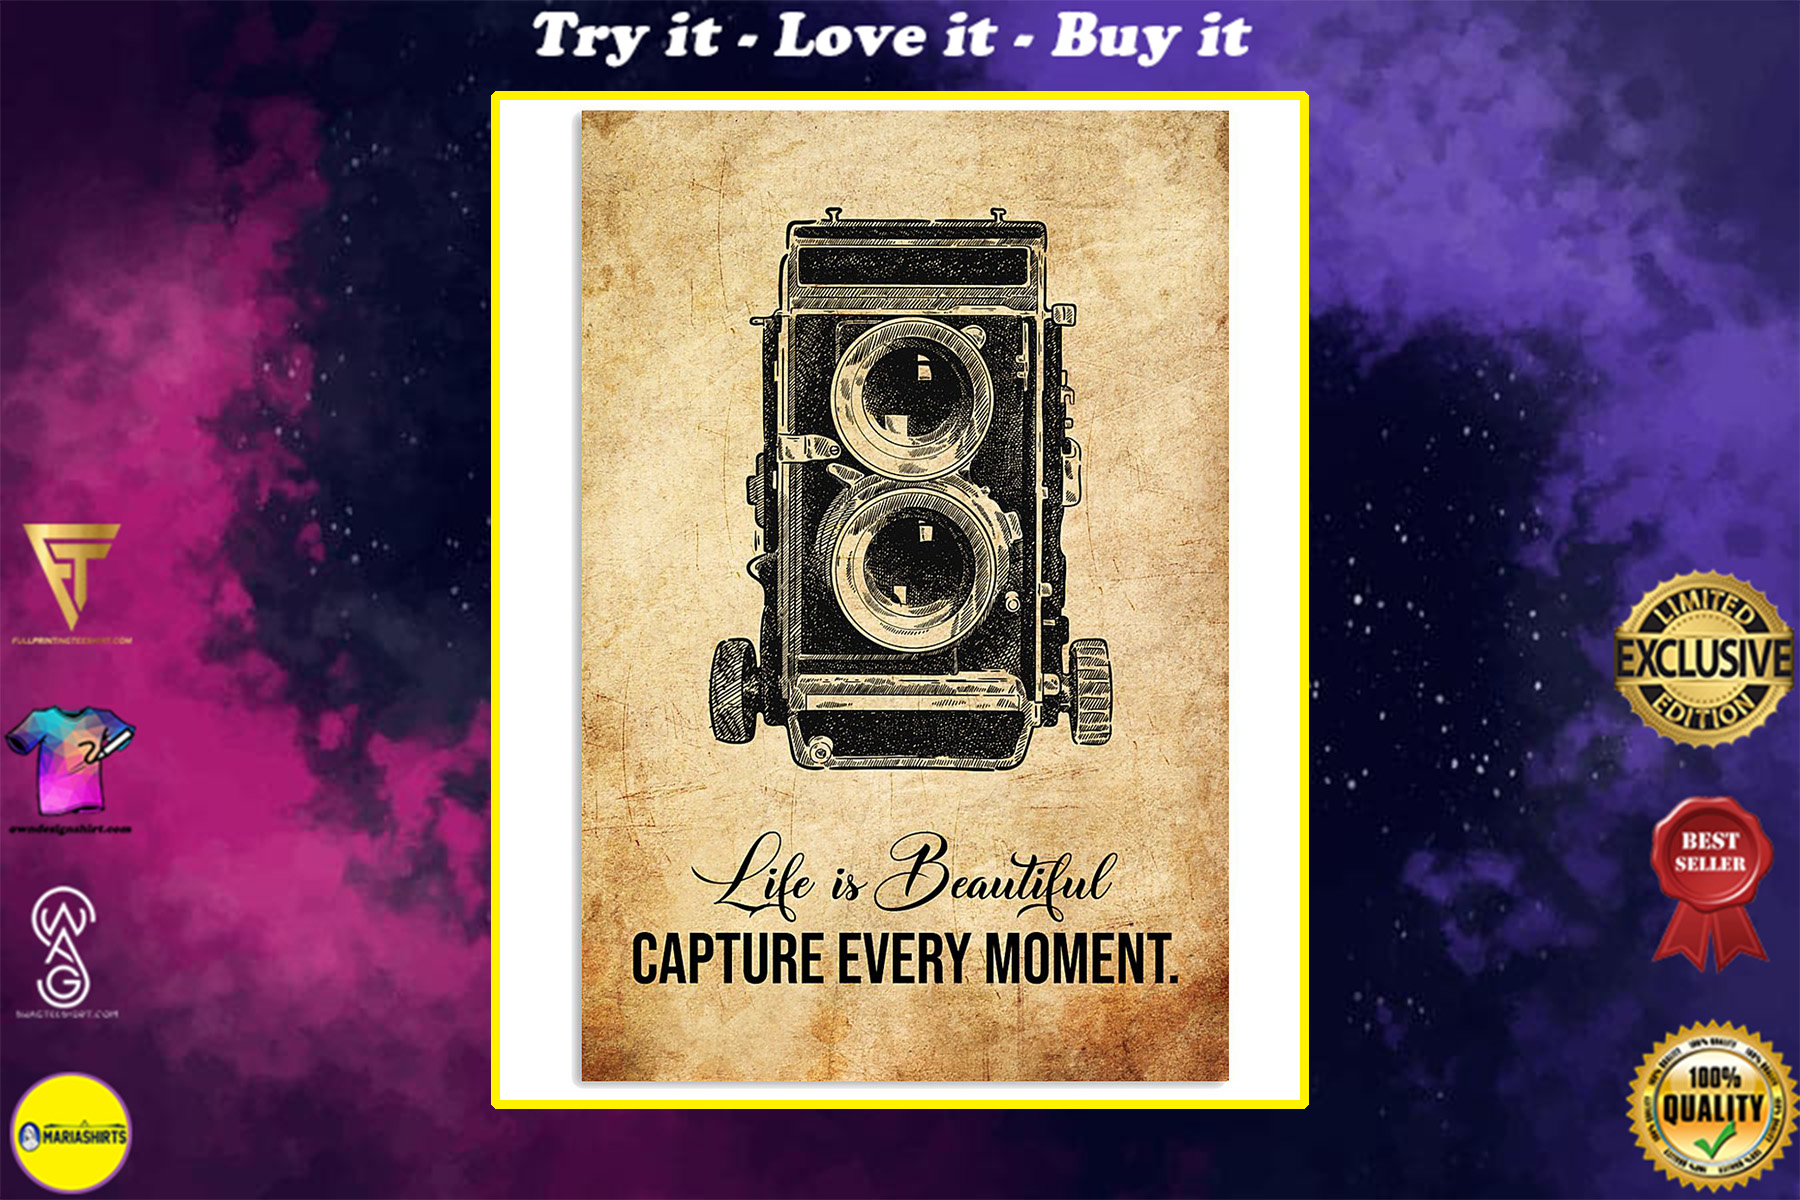 life is beautiful capture every moment photographer poster